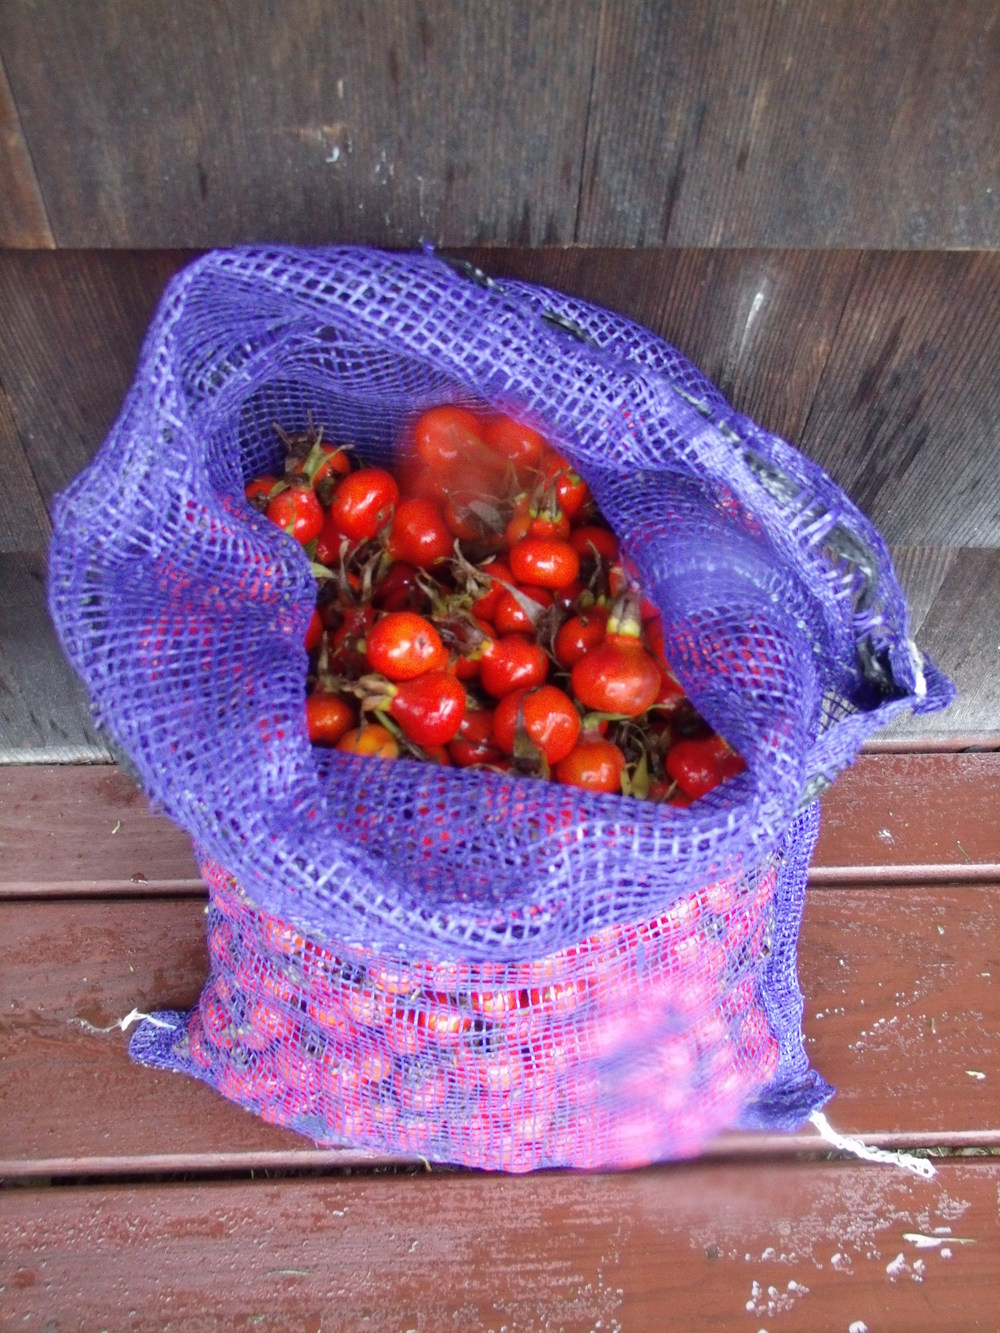 Rose hips harvested by Sarah Schumann from Seapower salt marsh, Tiverton